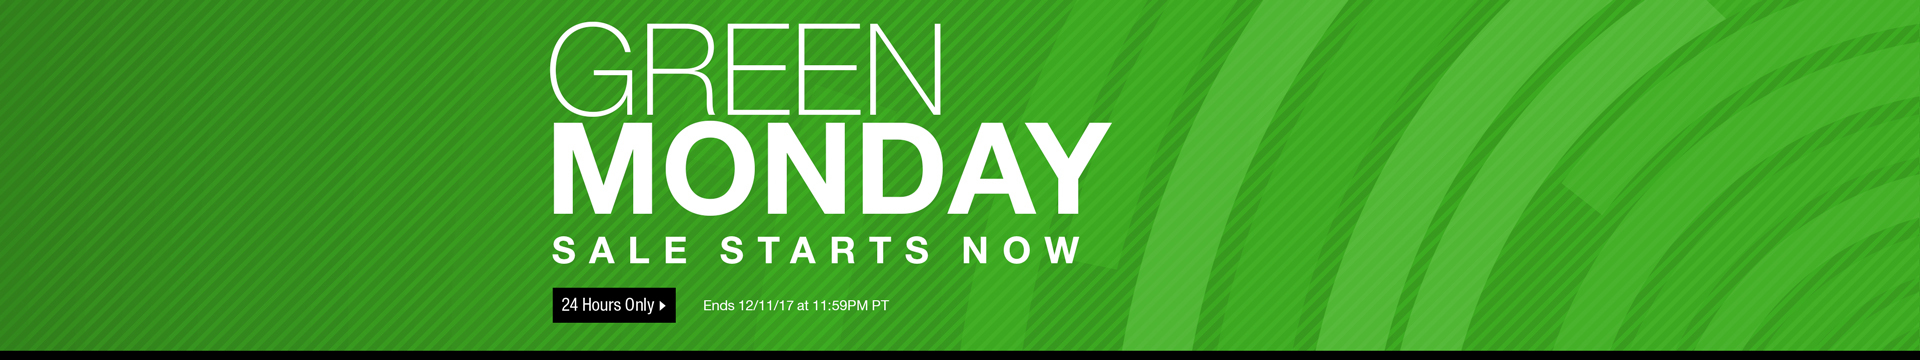 Green Monday Sale Starts Now